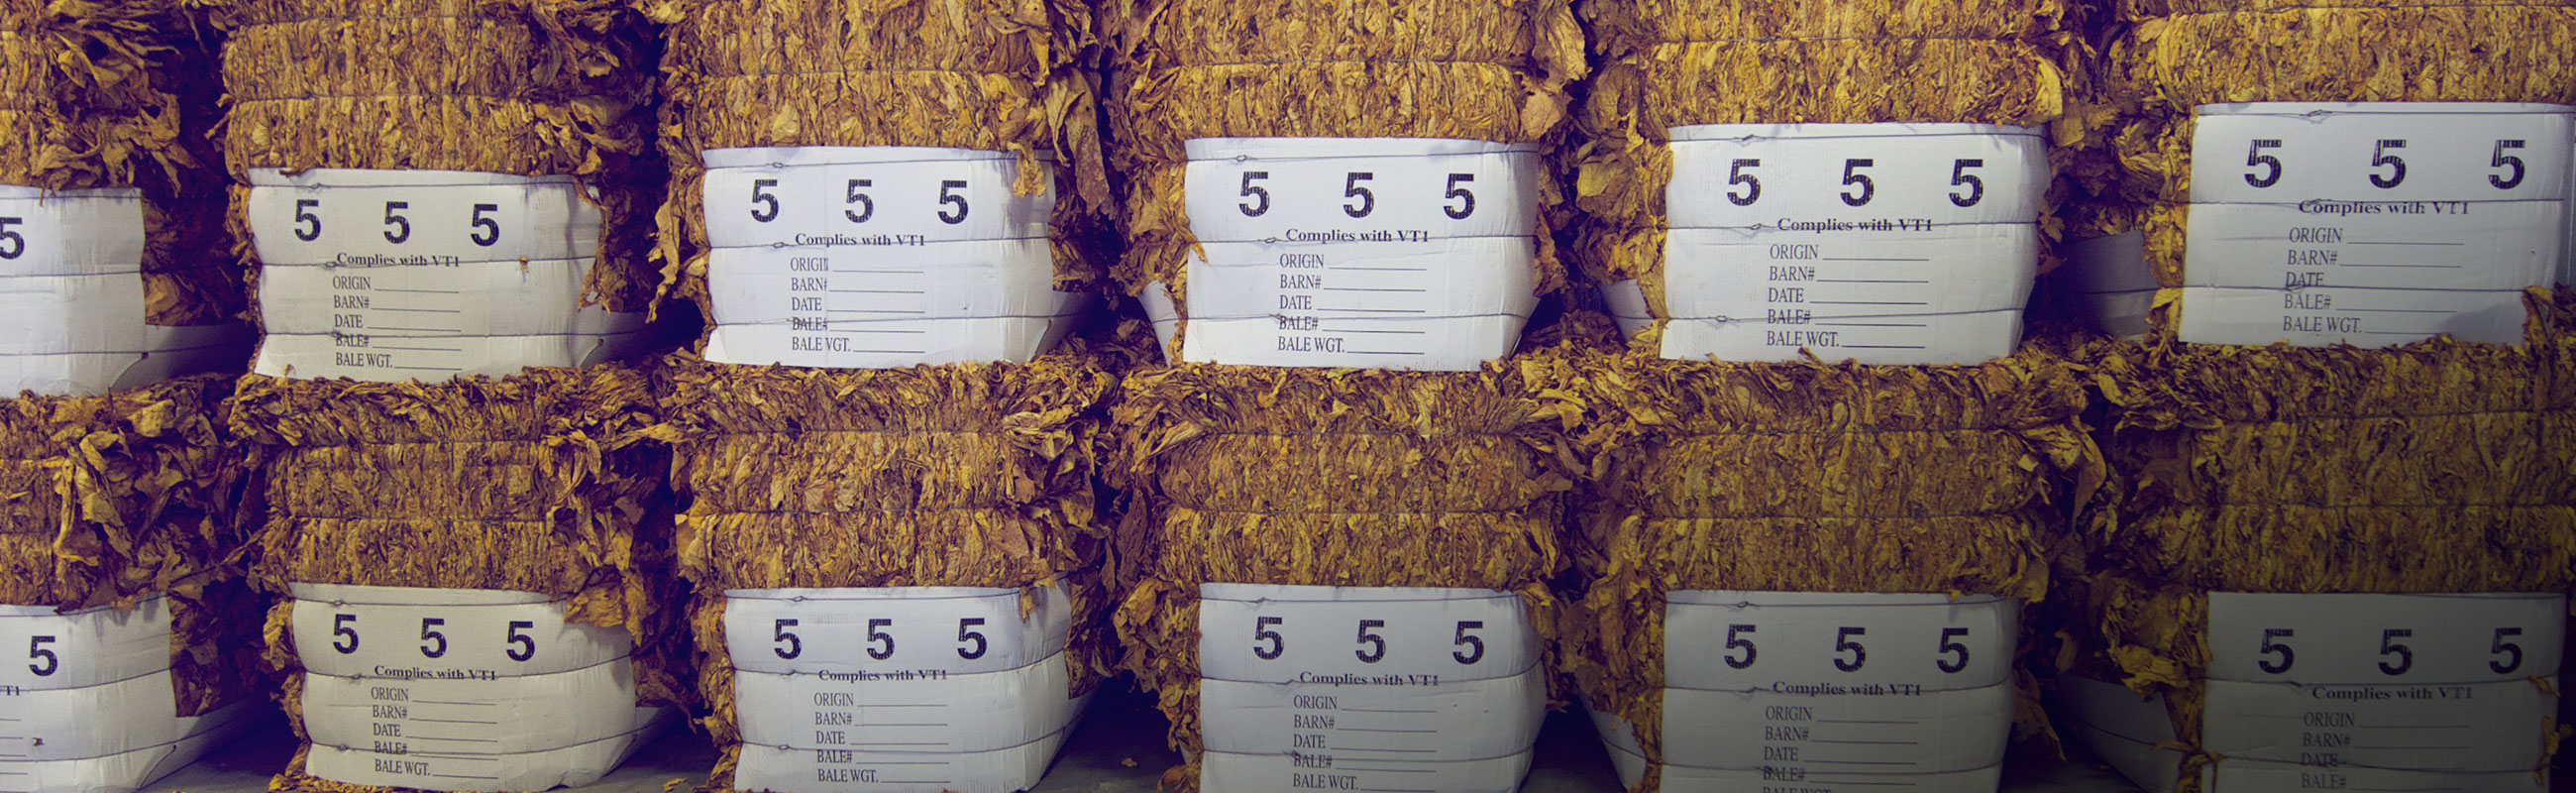 Tobacco bales packaging